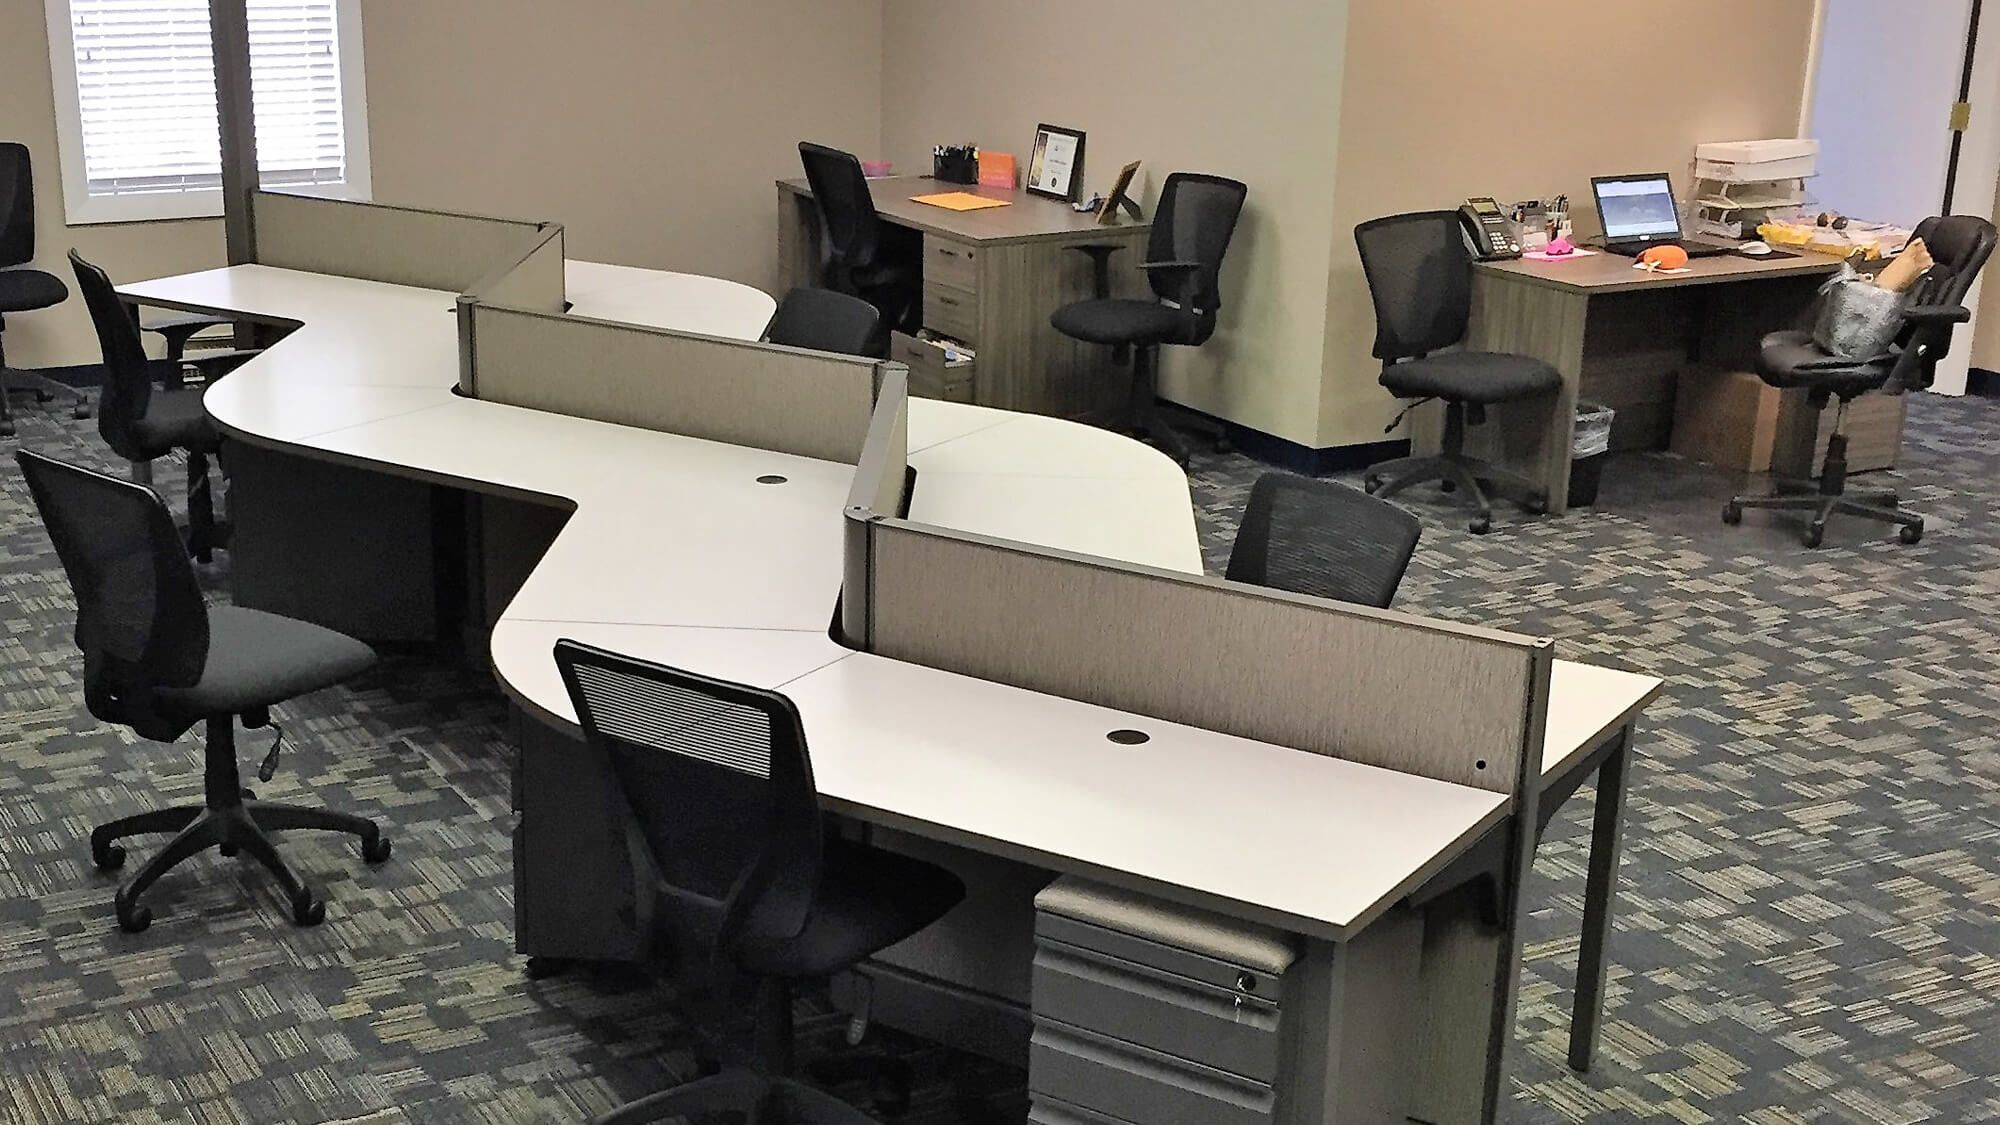 Office Design Furniture Installation In Warwick Ri For Slocum Agency We Can Design Specify Project Manag Office Design Modular Office Furniture Furniture